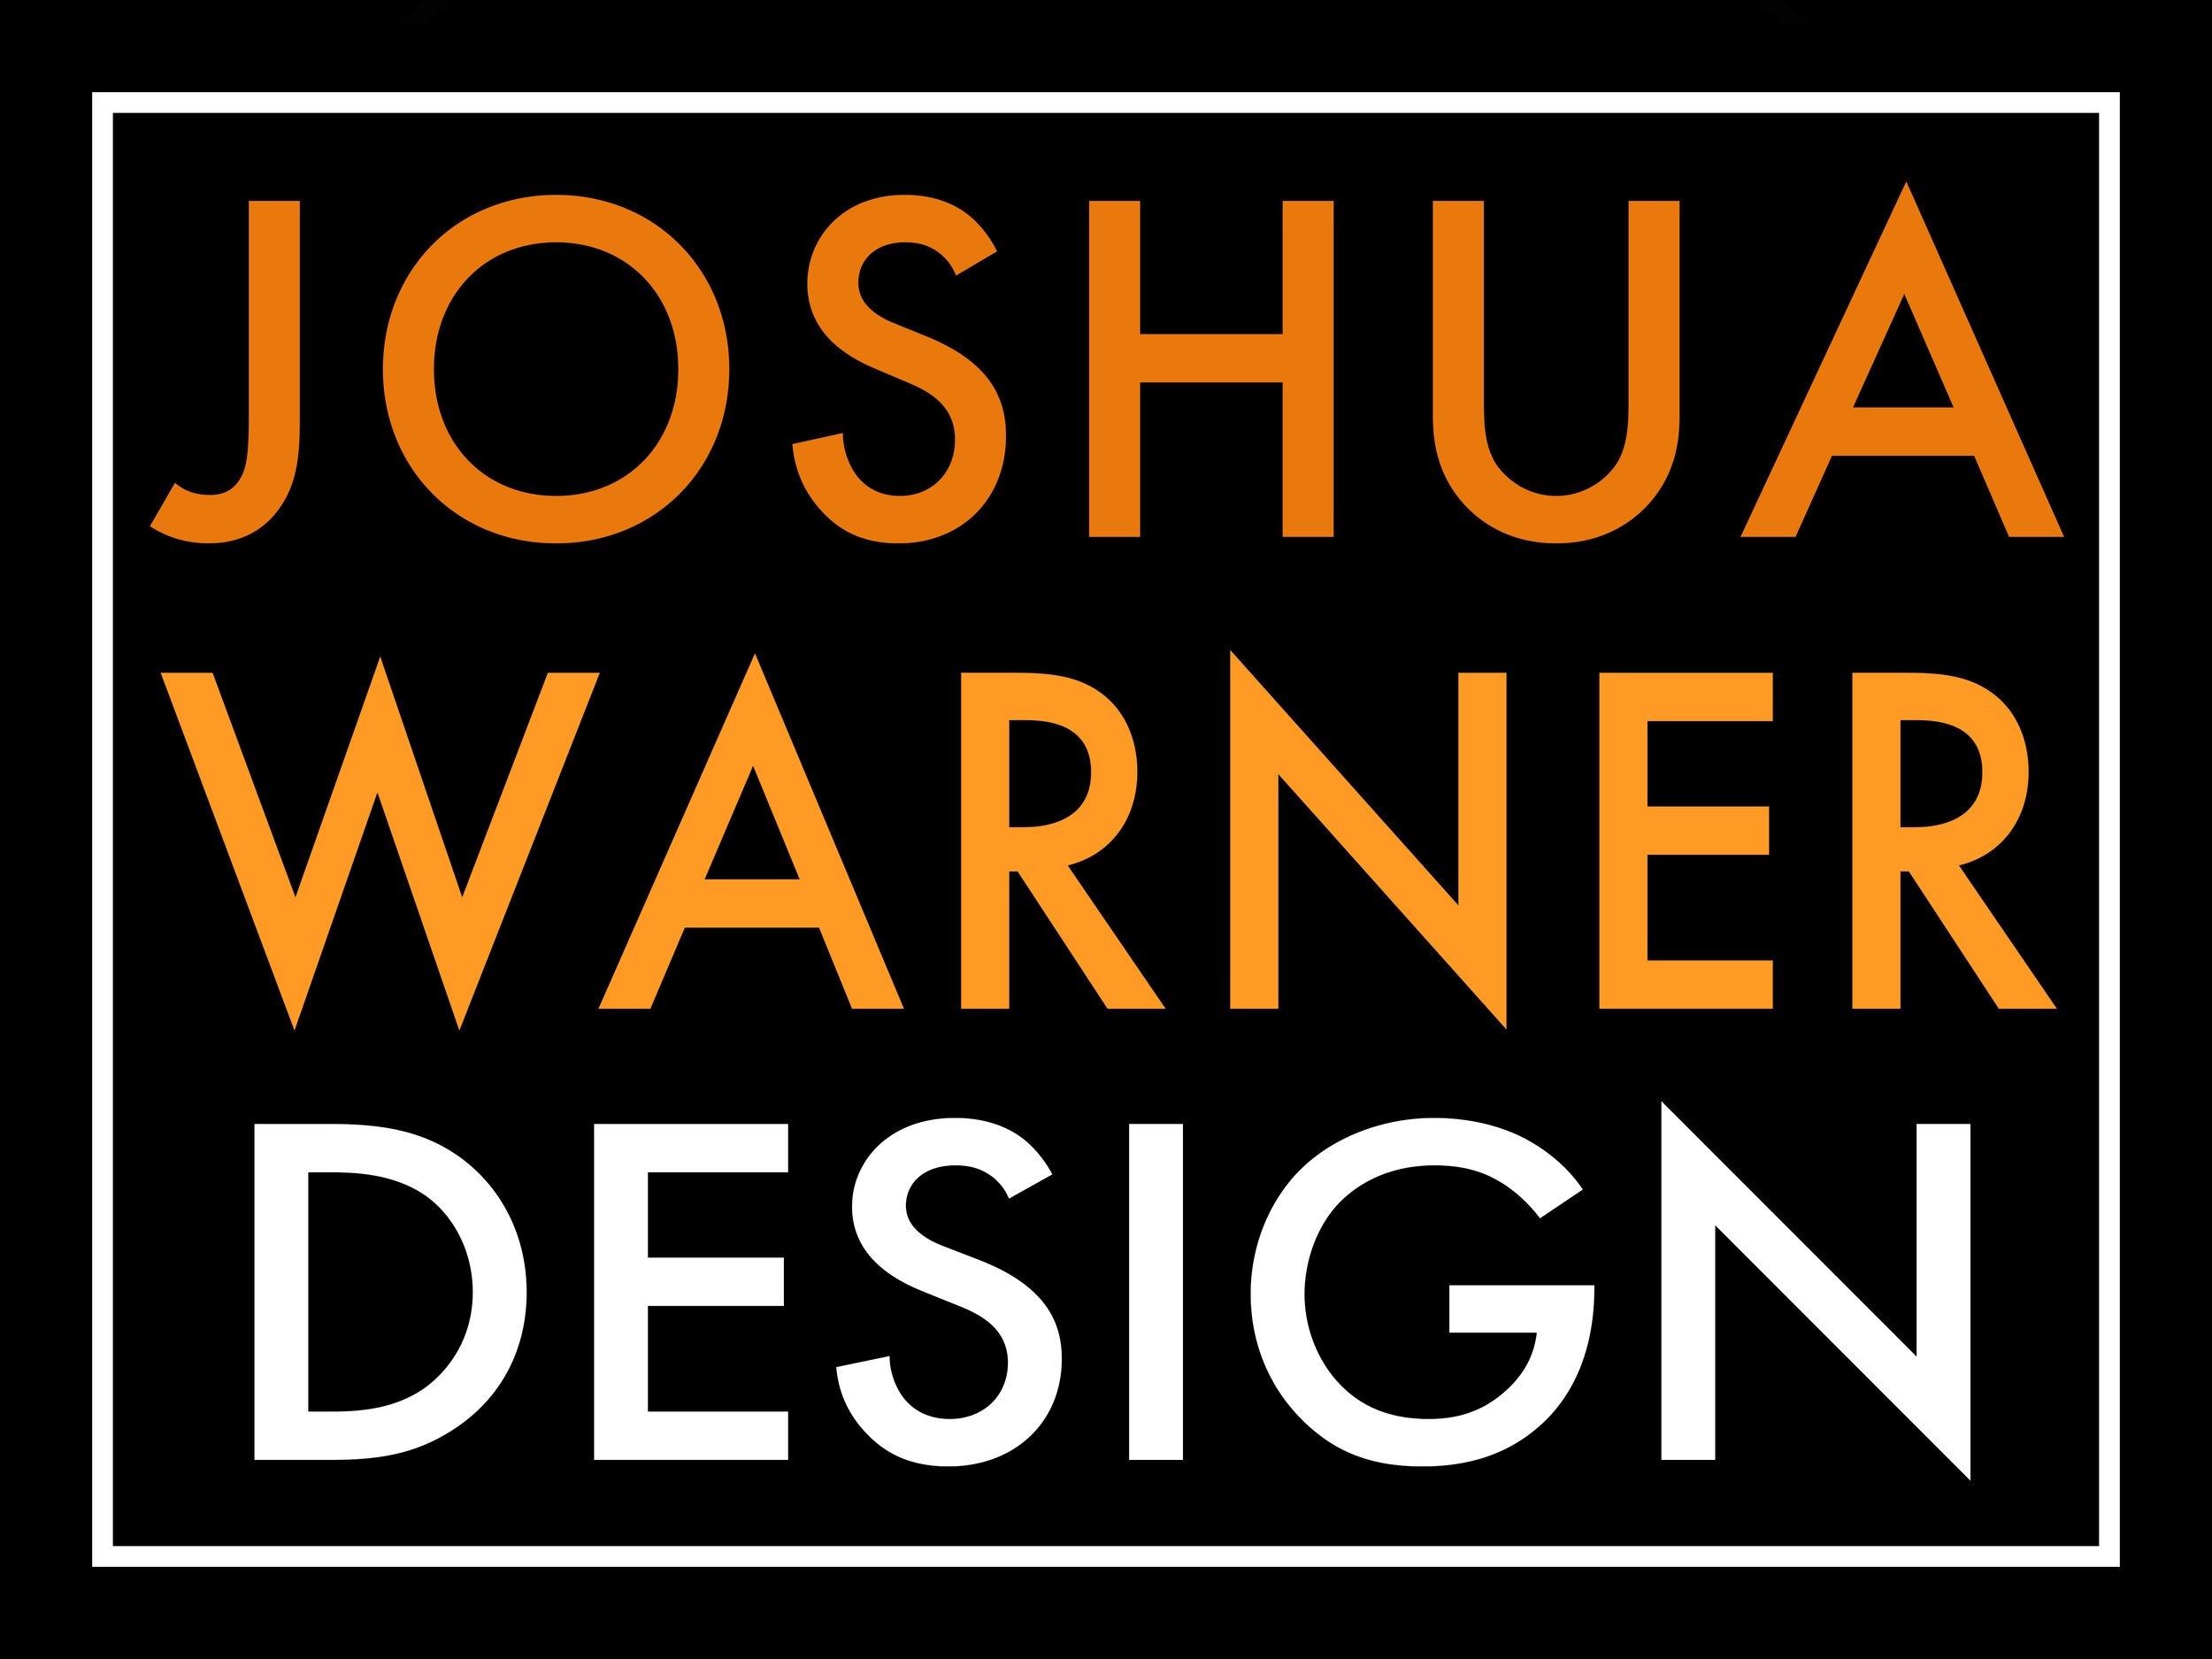 JOSHUA WARNER DESIGN